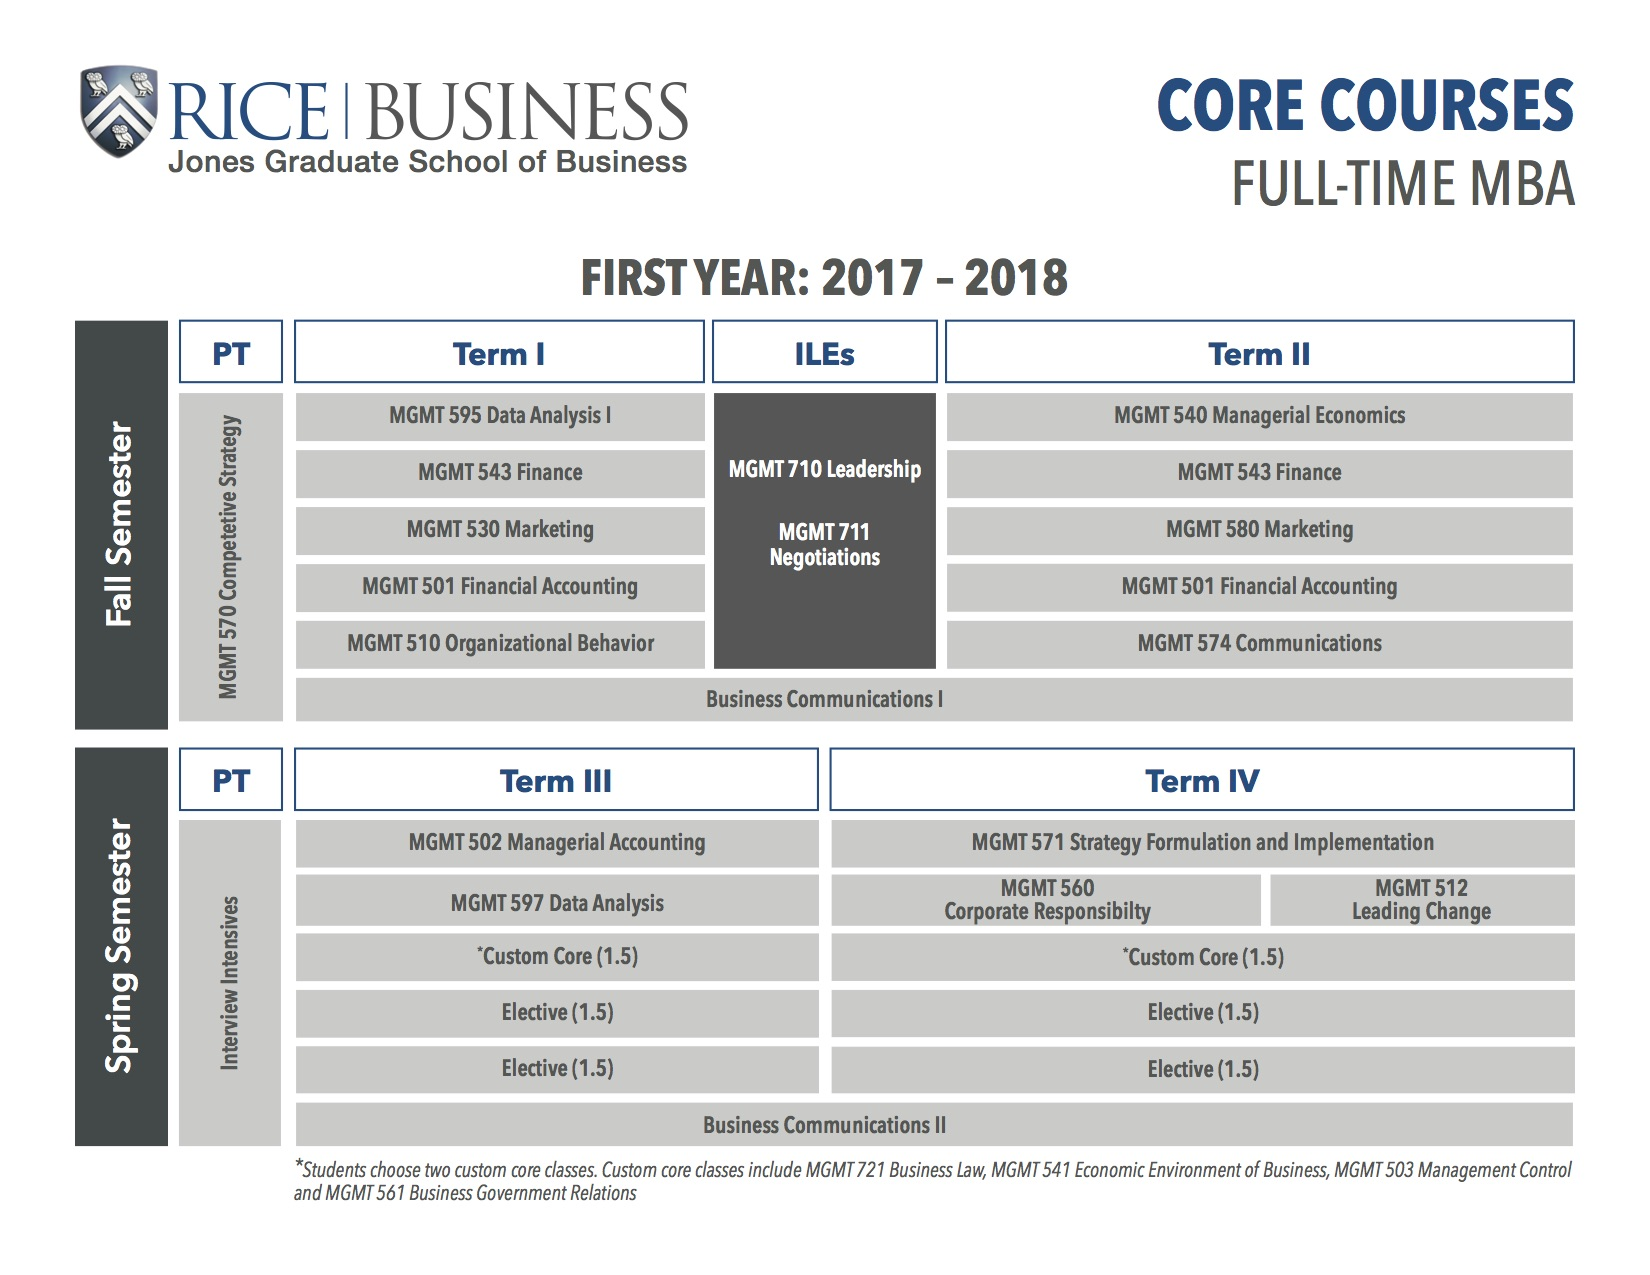 Full-Time MBA Core Courses